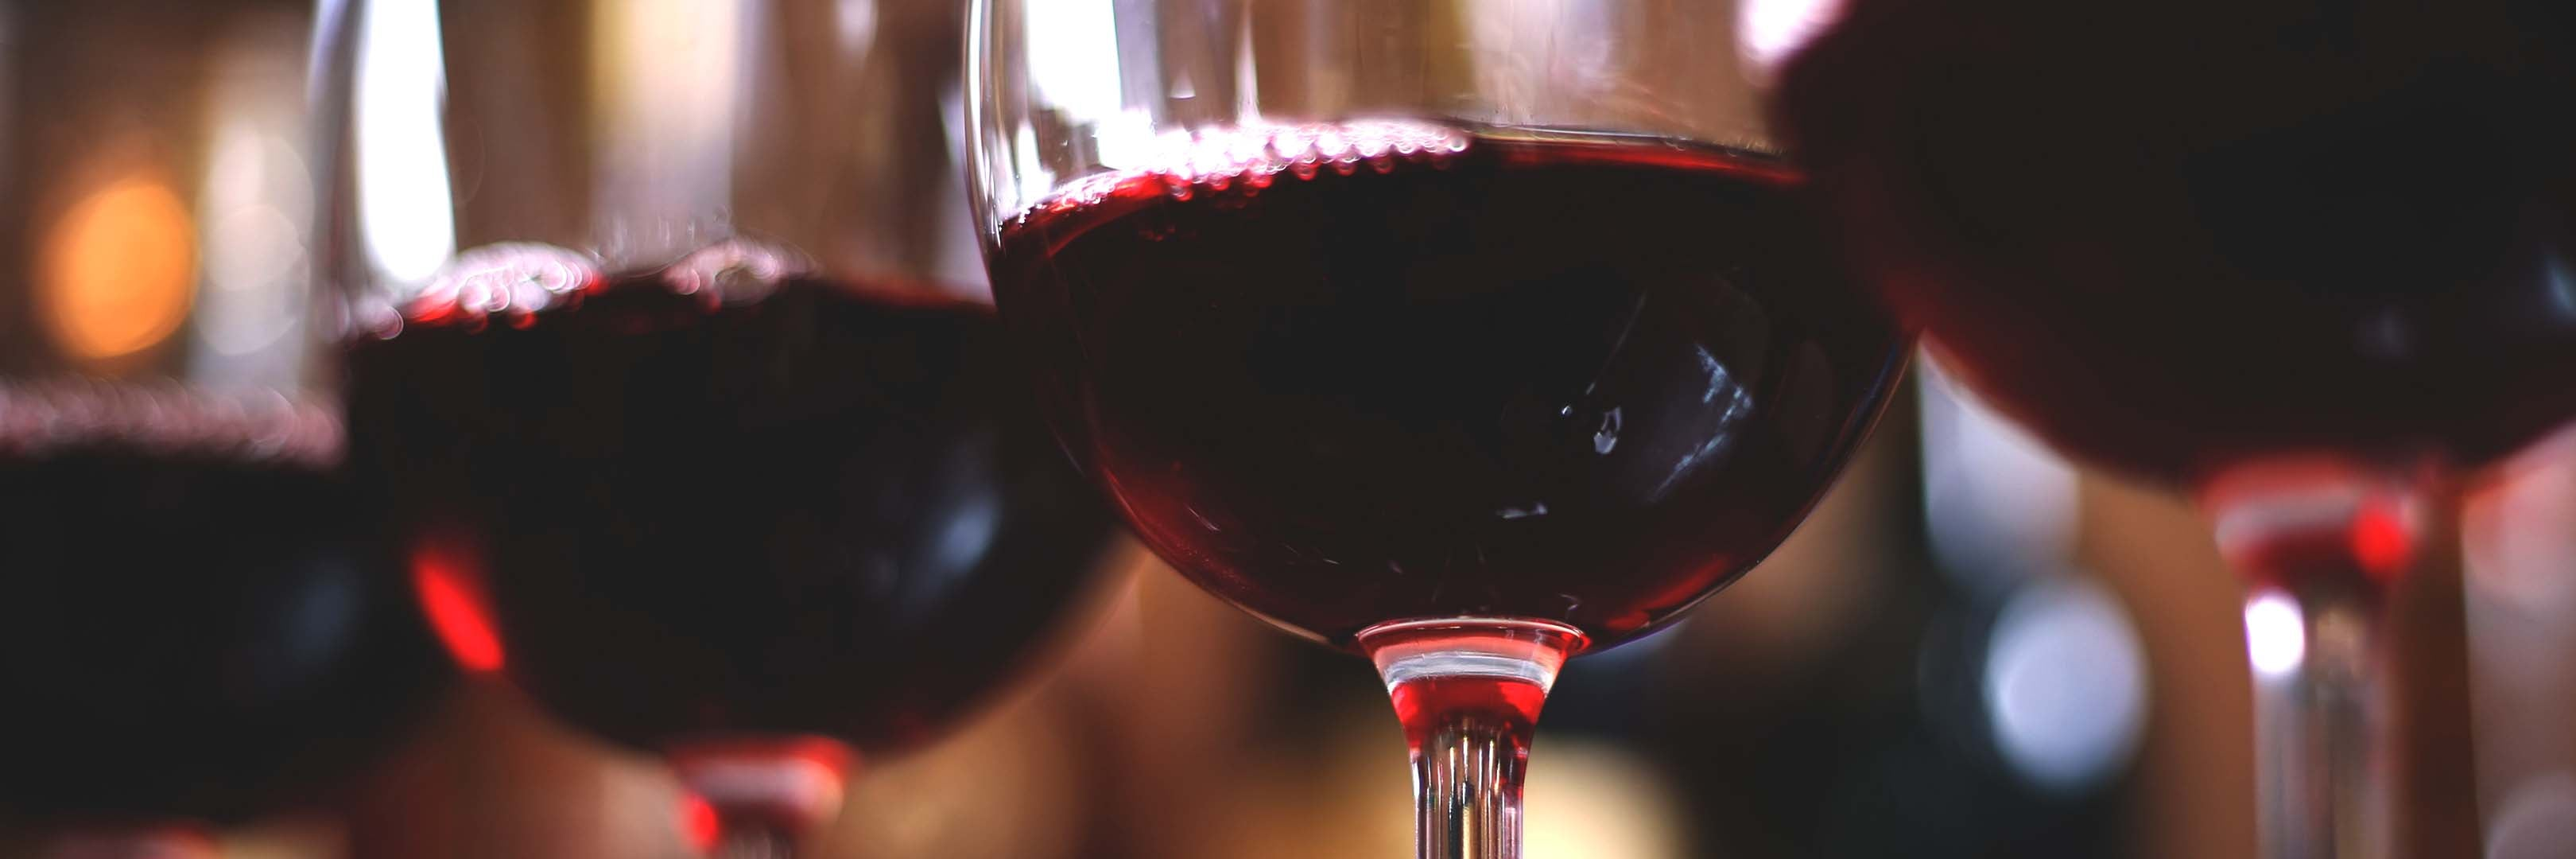 Looking for red wine brands? The best red wine price and brands in the Philippines now available at Winery Philippines, #1 online wine store for red wine brands and red wine types in the Philippines.